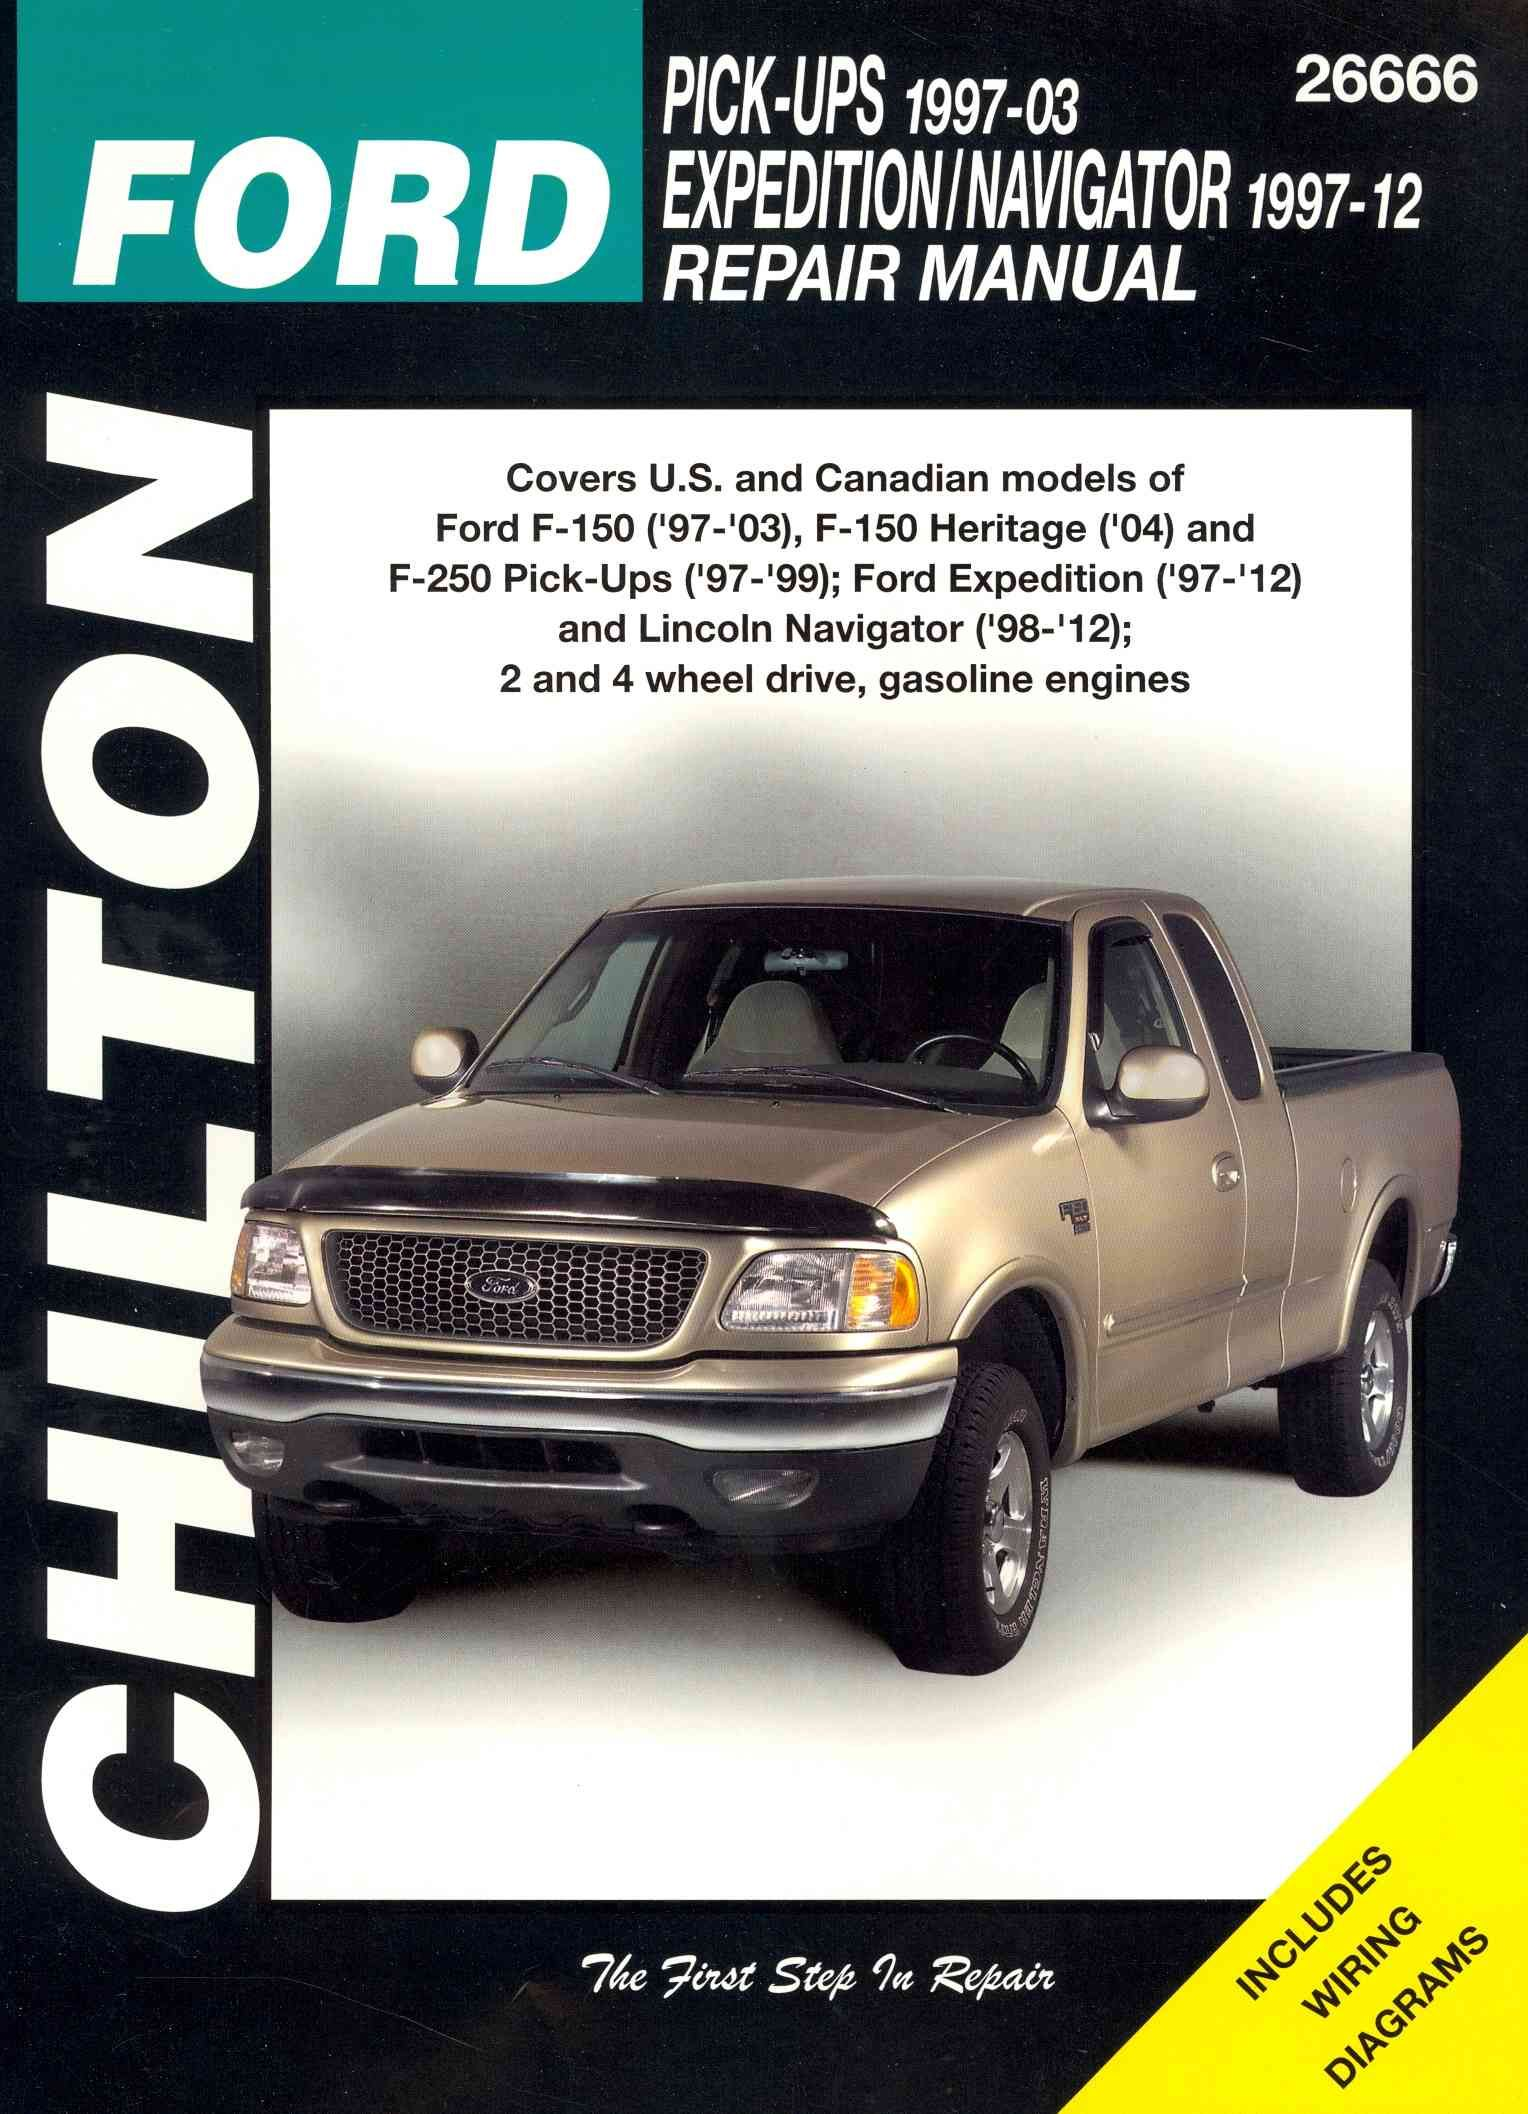 Chilton's Ford Pick-Ups 1997-03 / Expedition / Navigator 1997-12 Repair  Manual